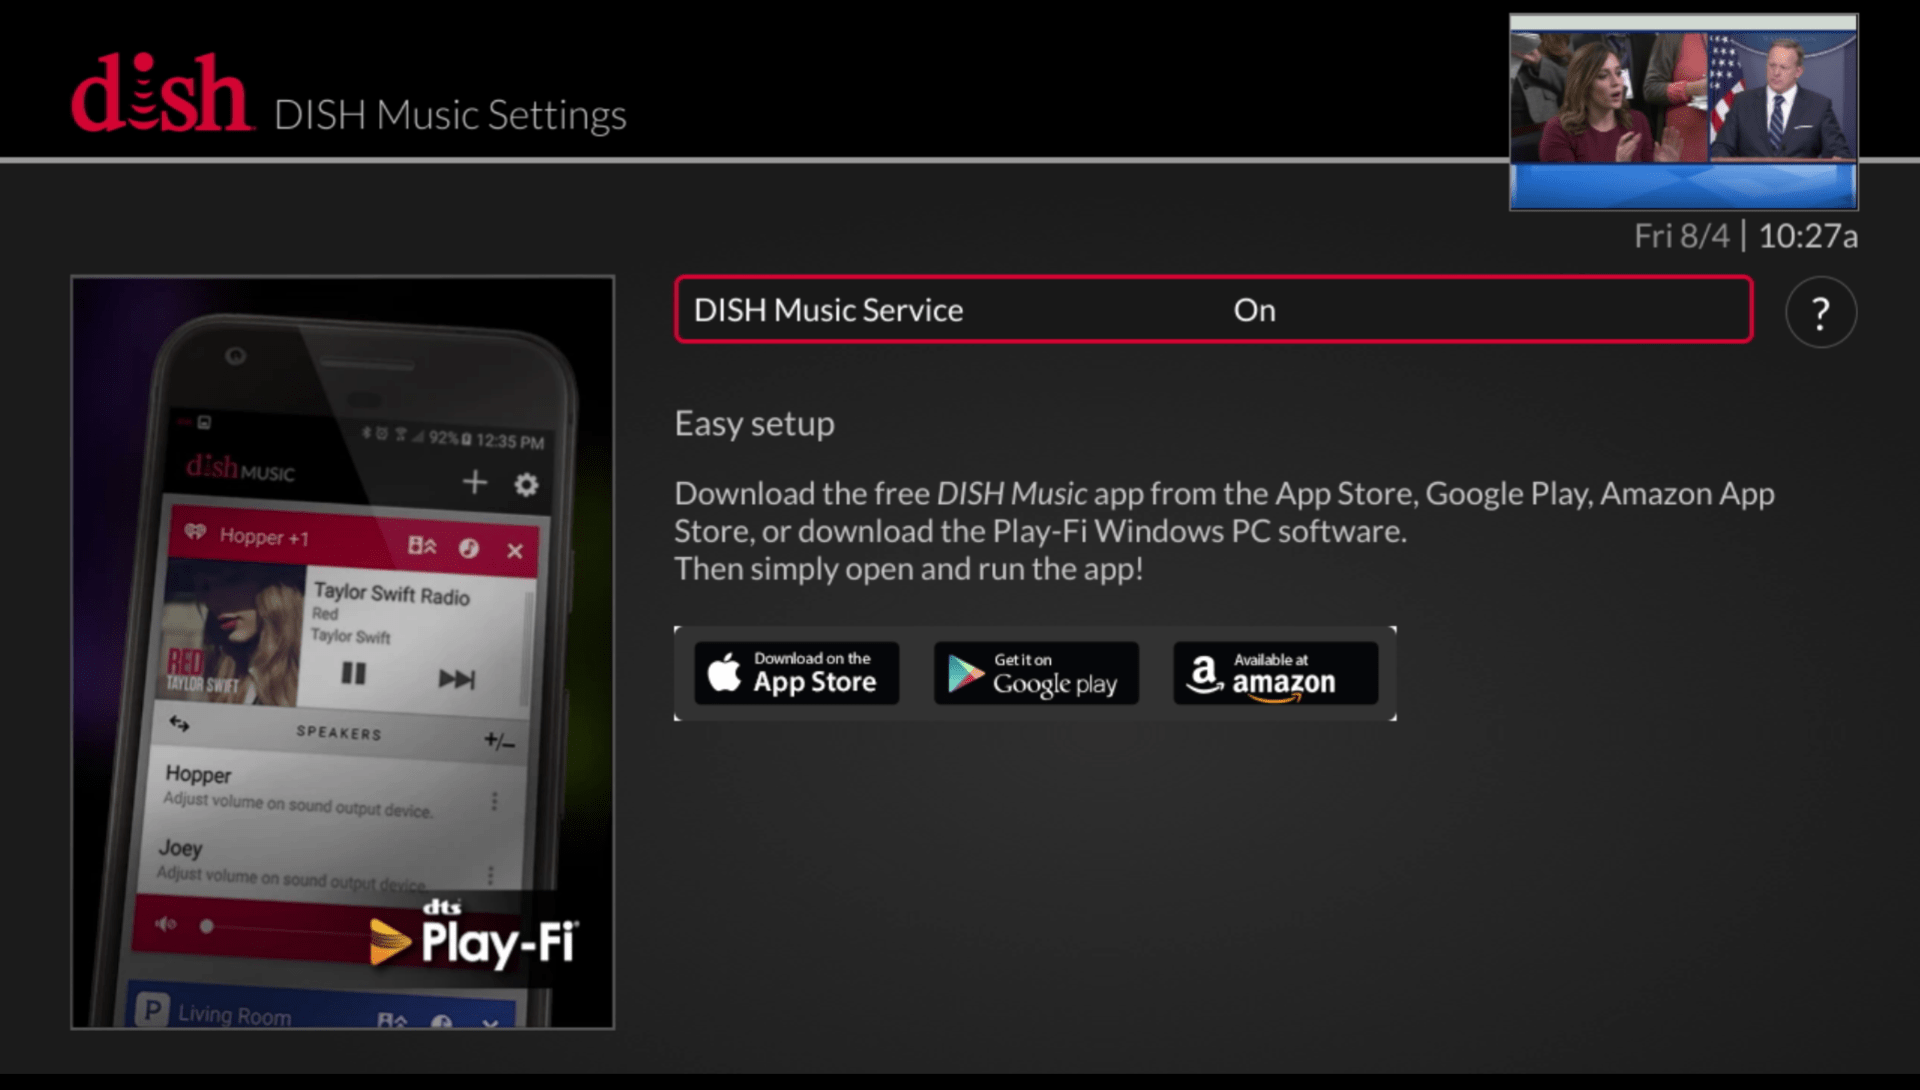 hight resolution of just use your remote to go to the menu select settings and then dish music you ll see the screen below